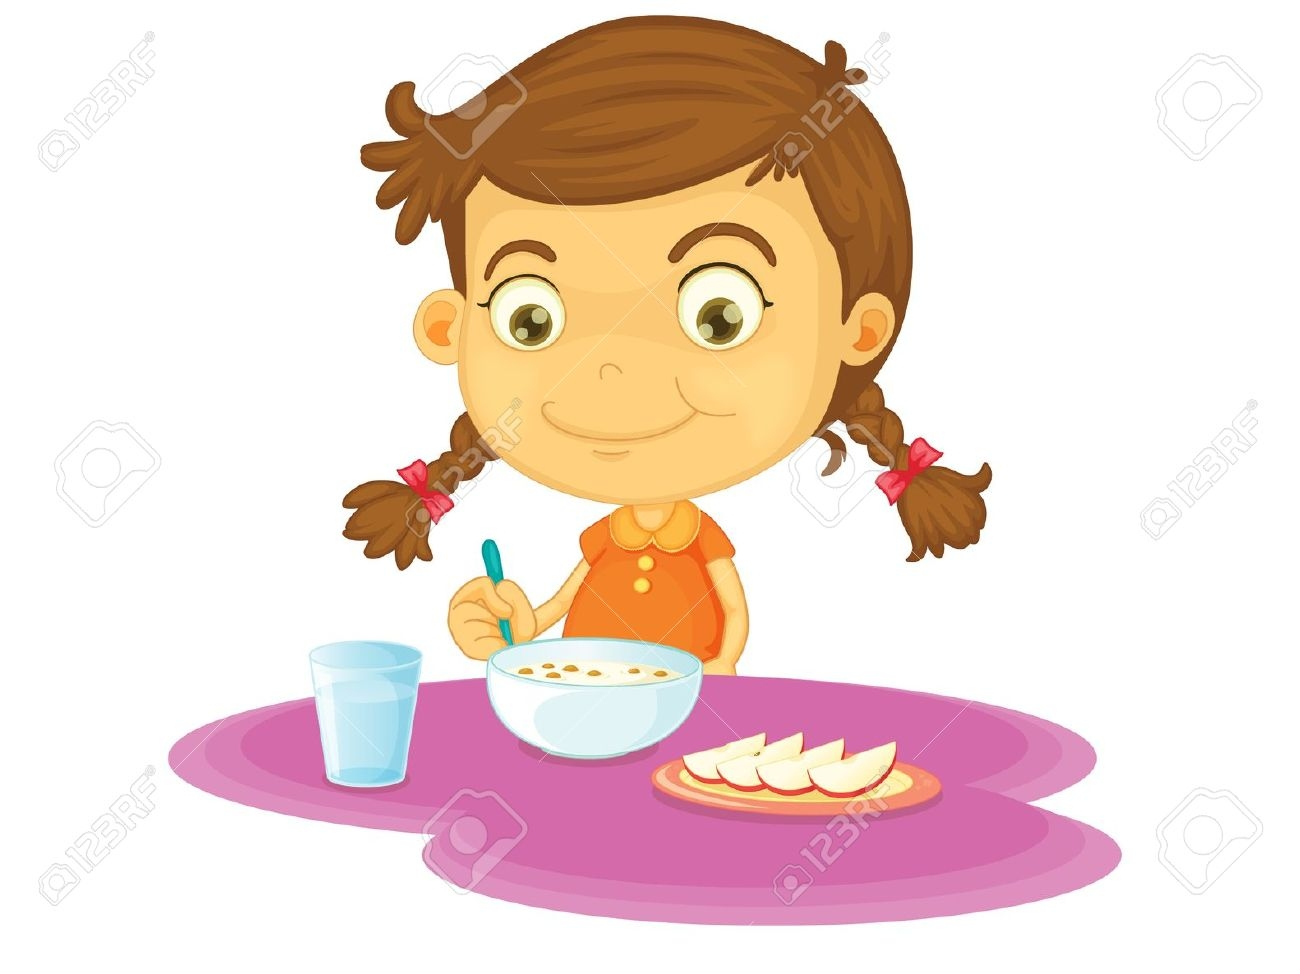 Breakfast clipart healthy living  Clipart clipart kids The